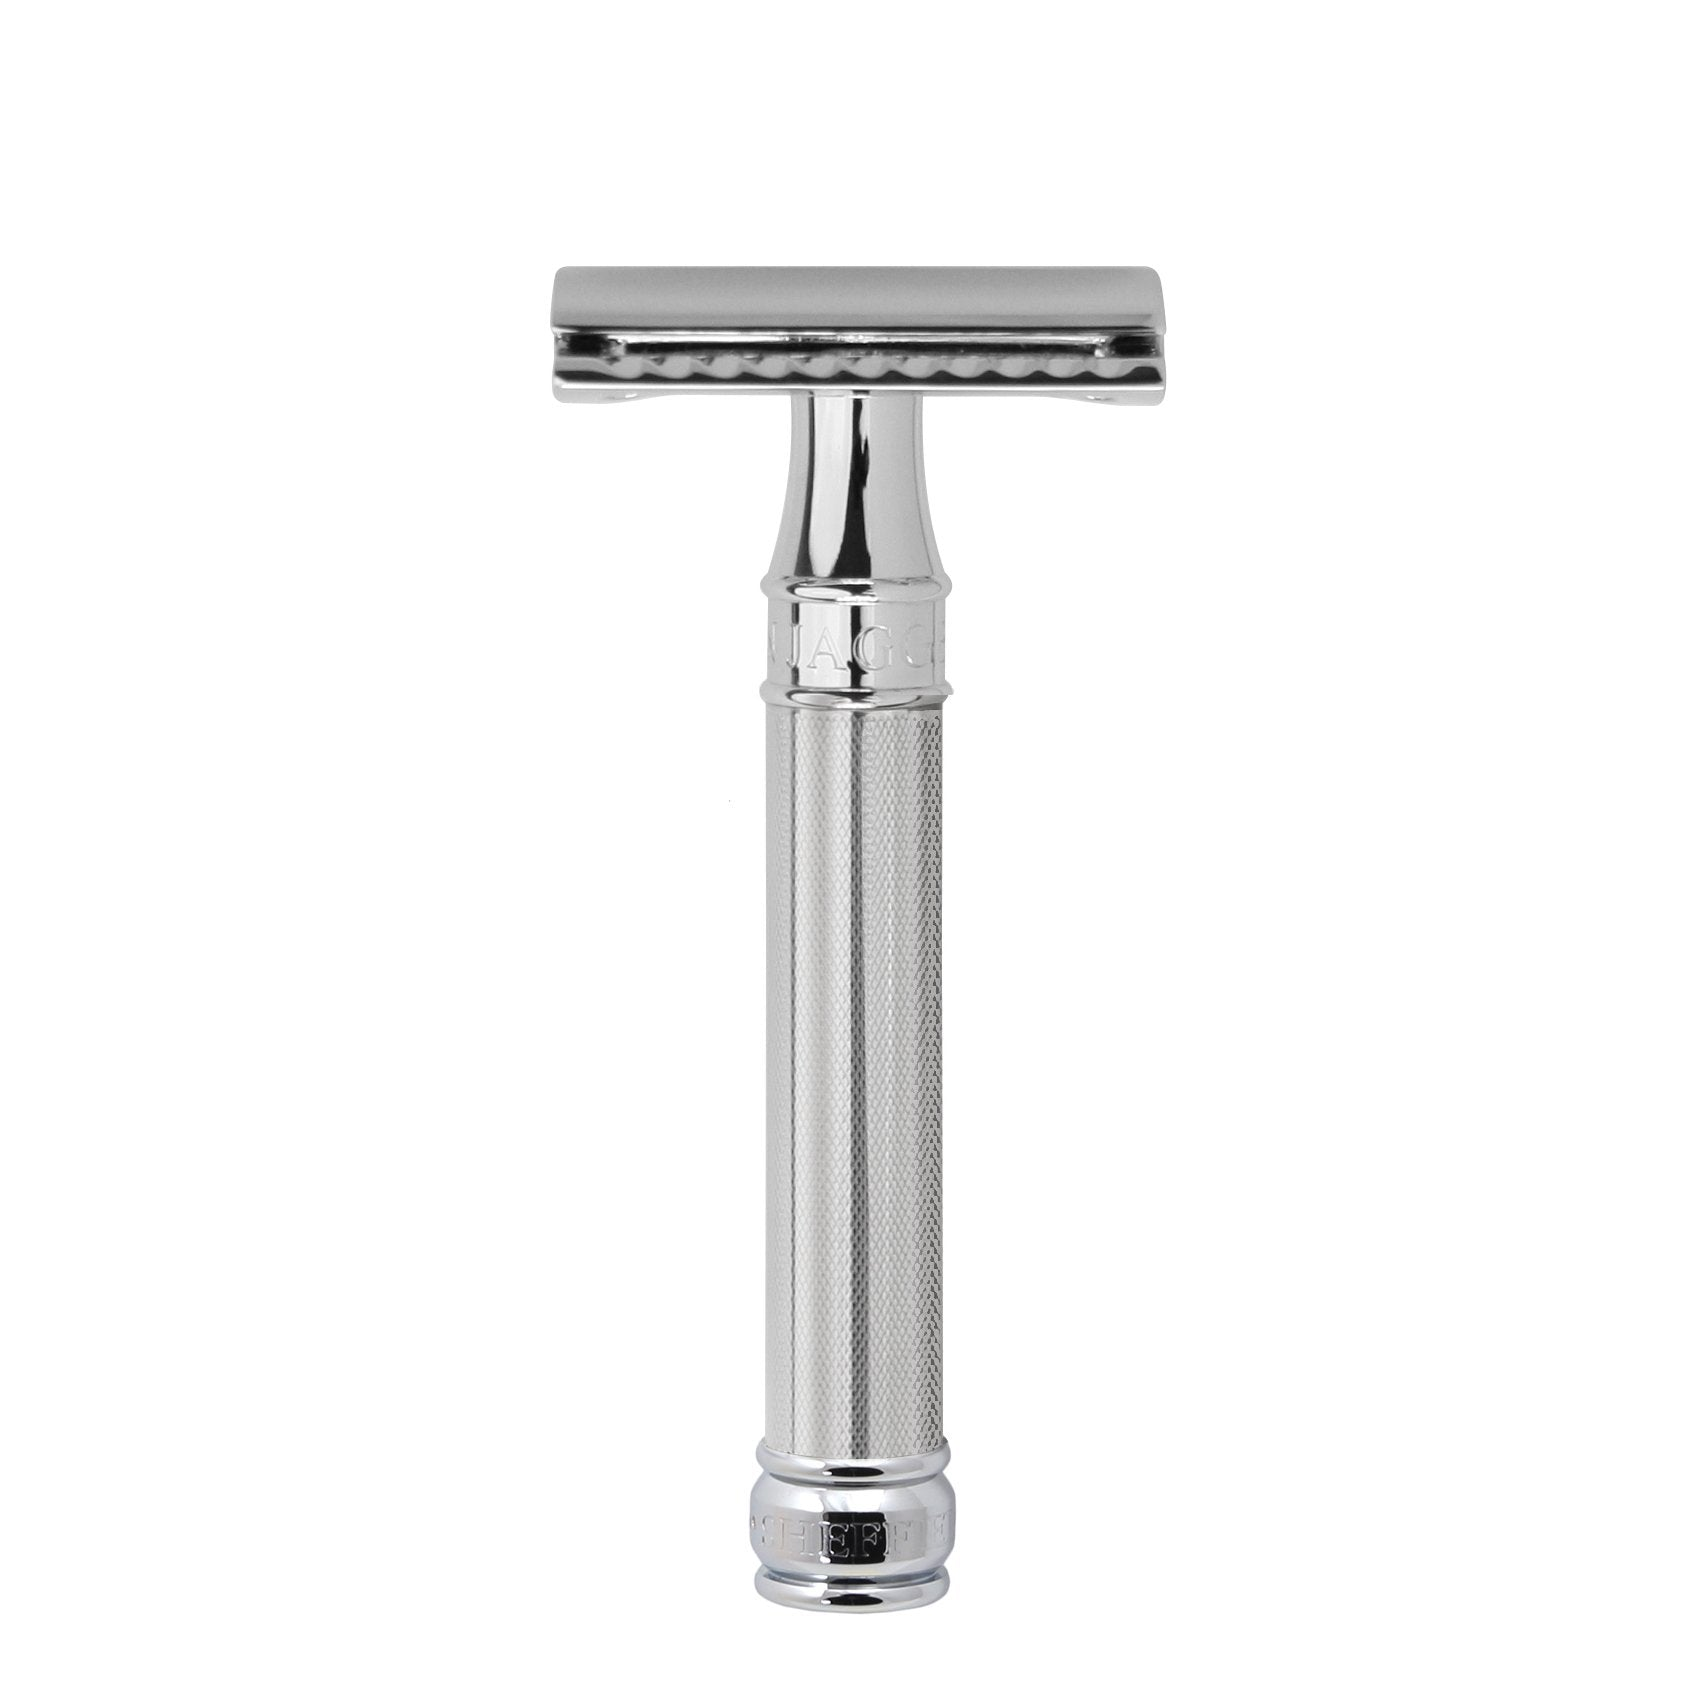 EDWIN JAGGER DOUBLE EDGE CHROME SAFETY RAZOR DE89BA11BL